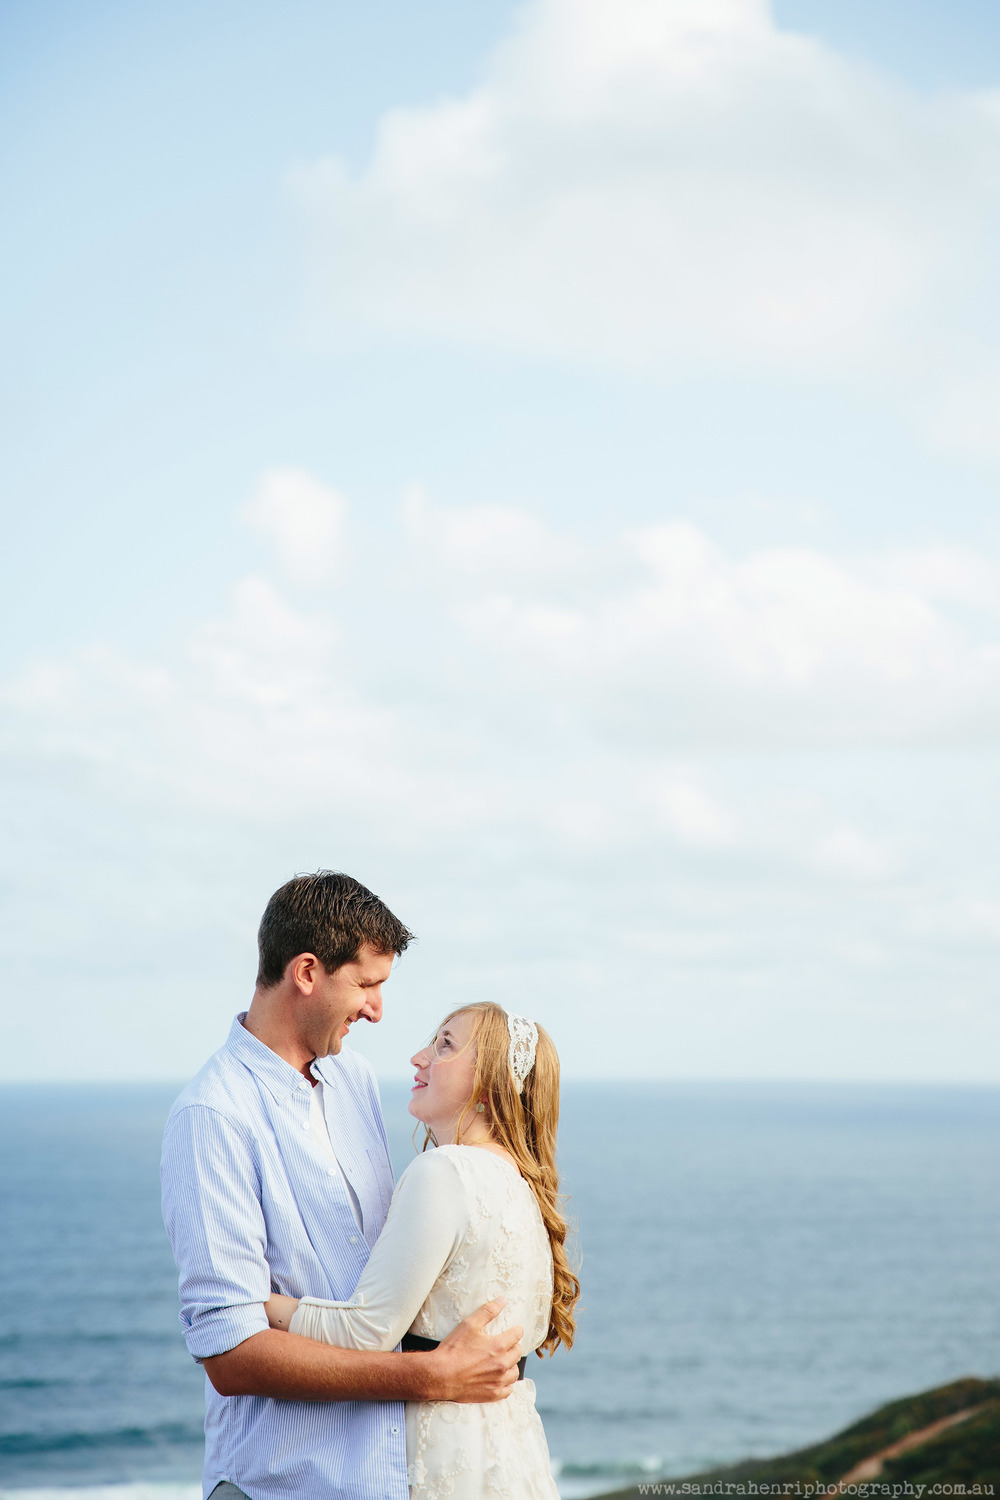 Candid-Beloved-Couples-photographer-Central-Coast-4.jpg